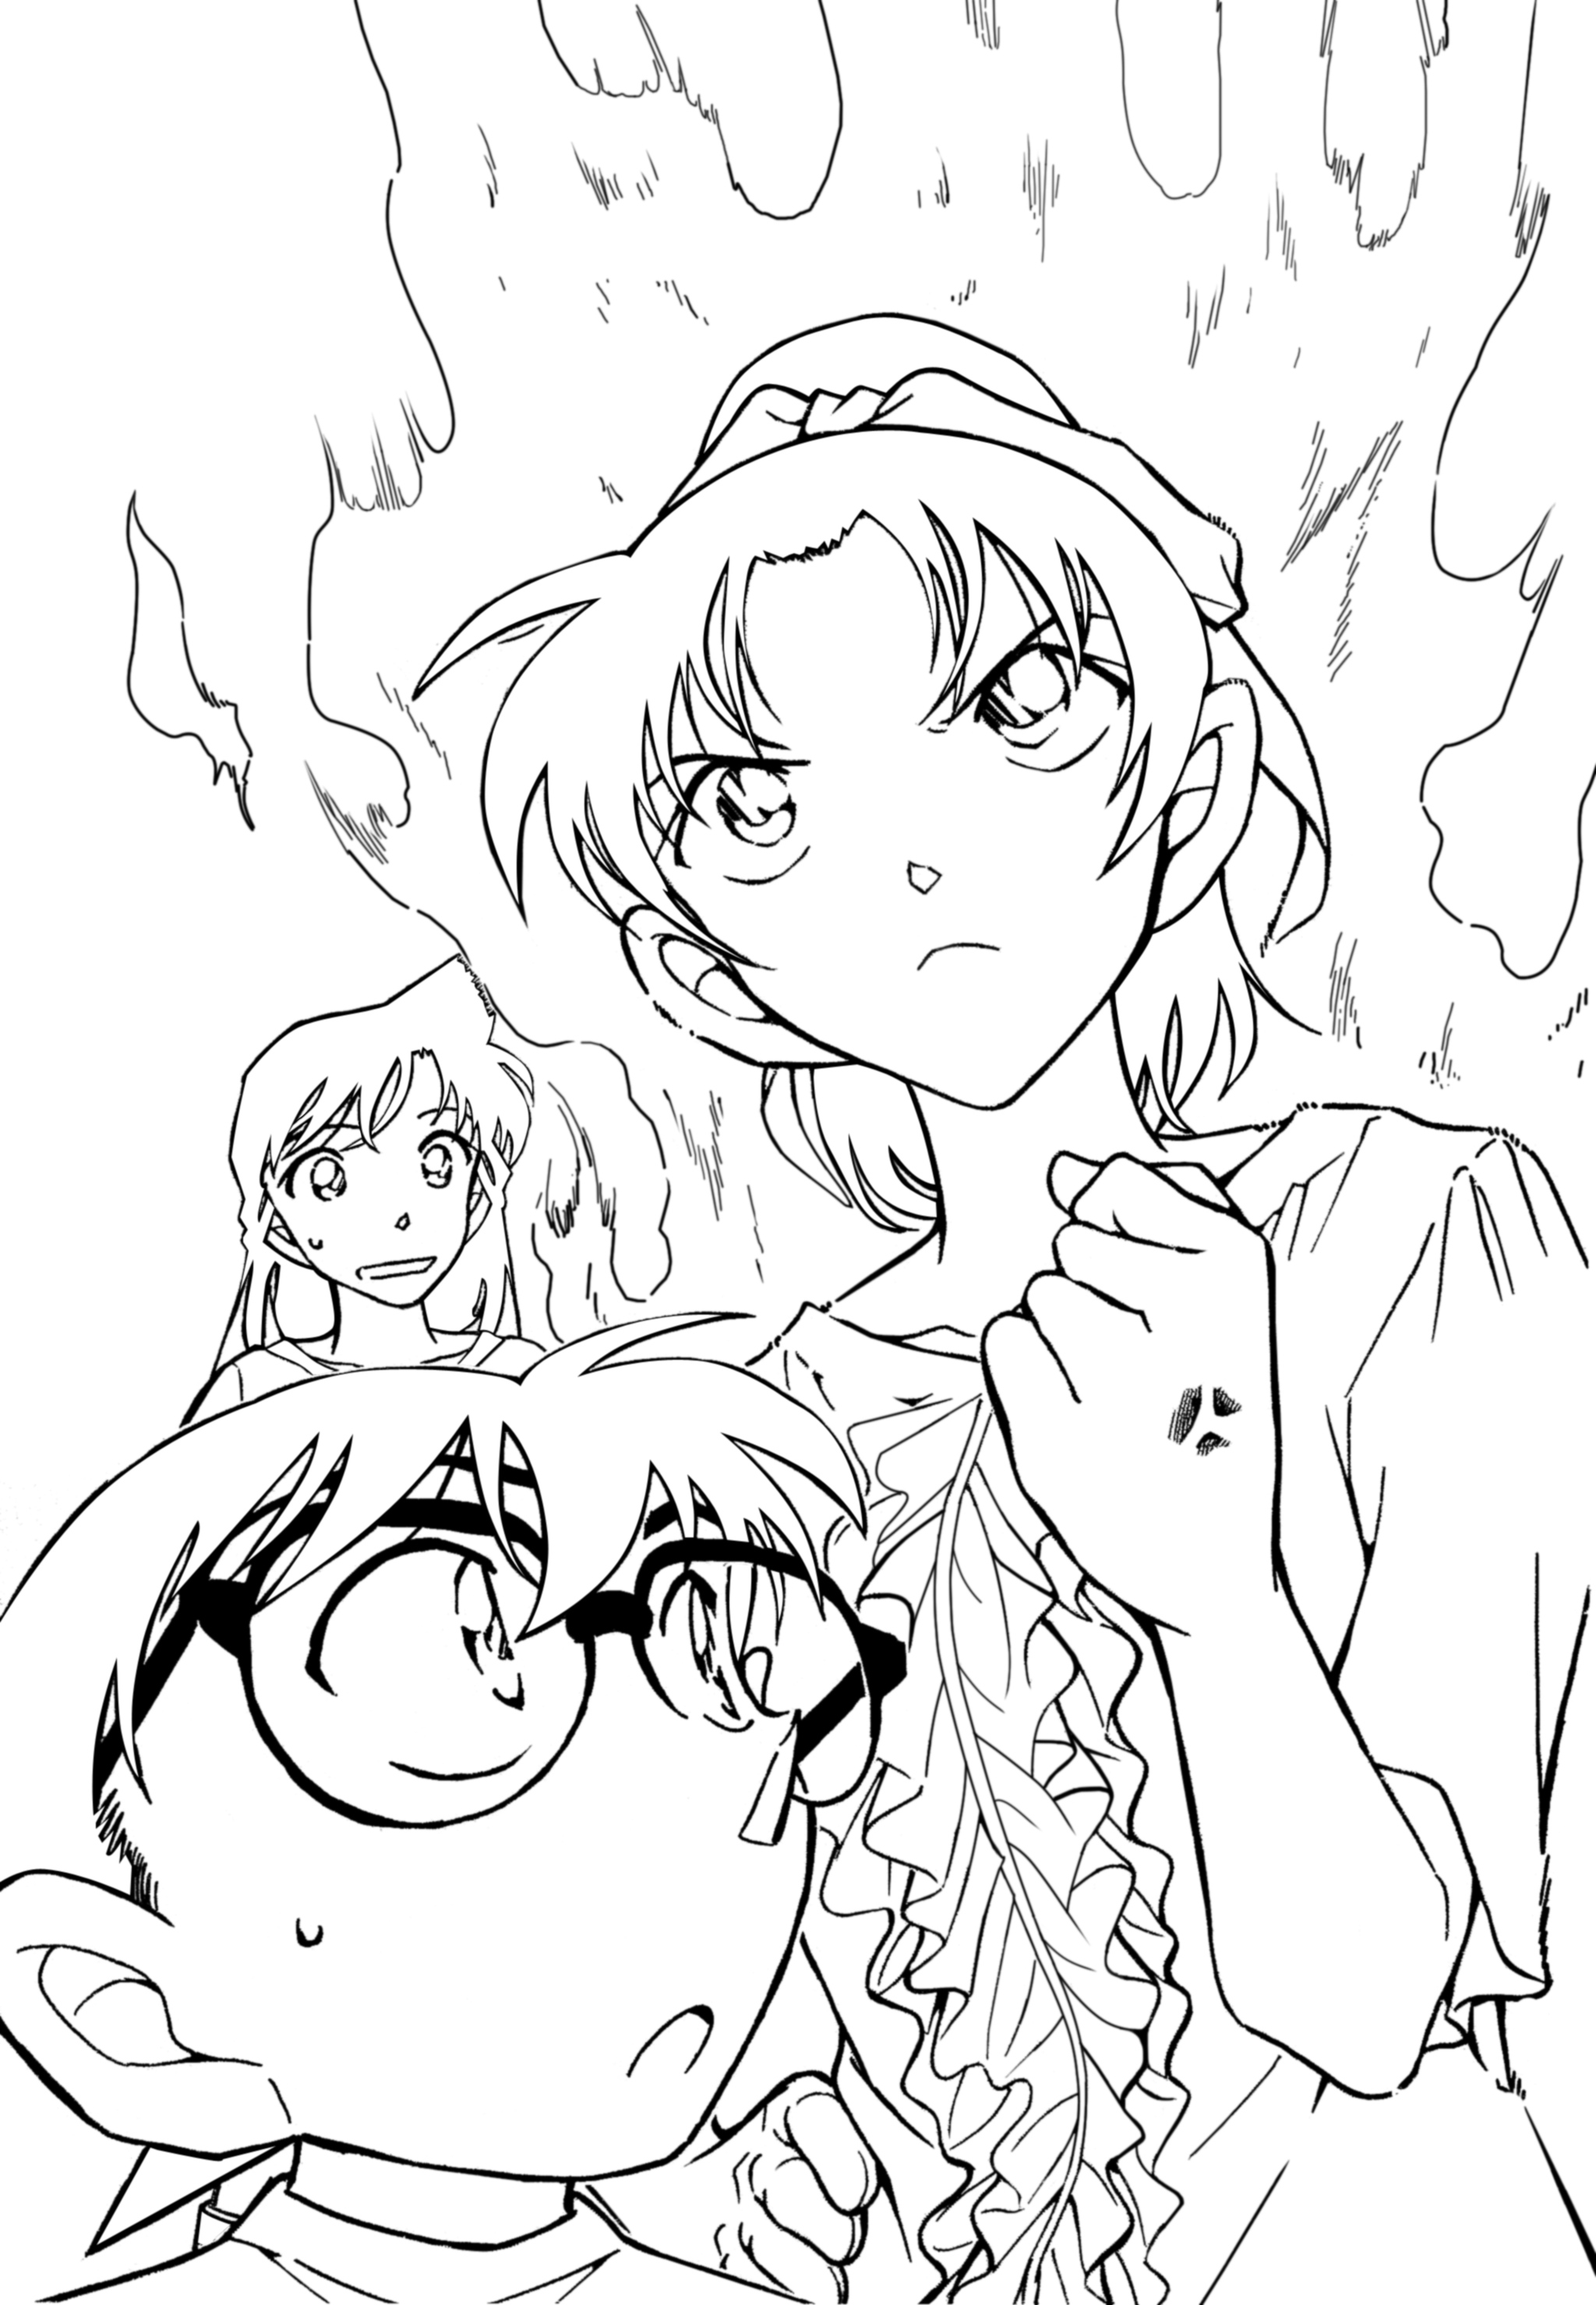 Ran Mouri with the team coloring page